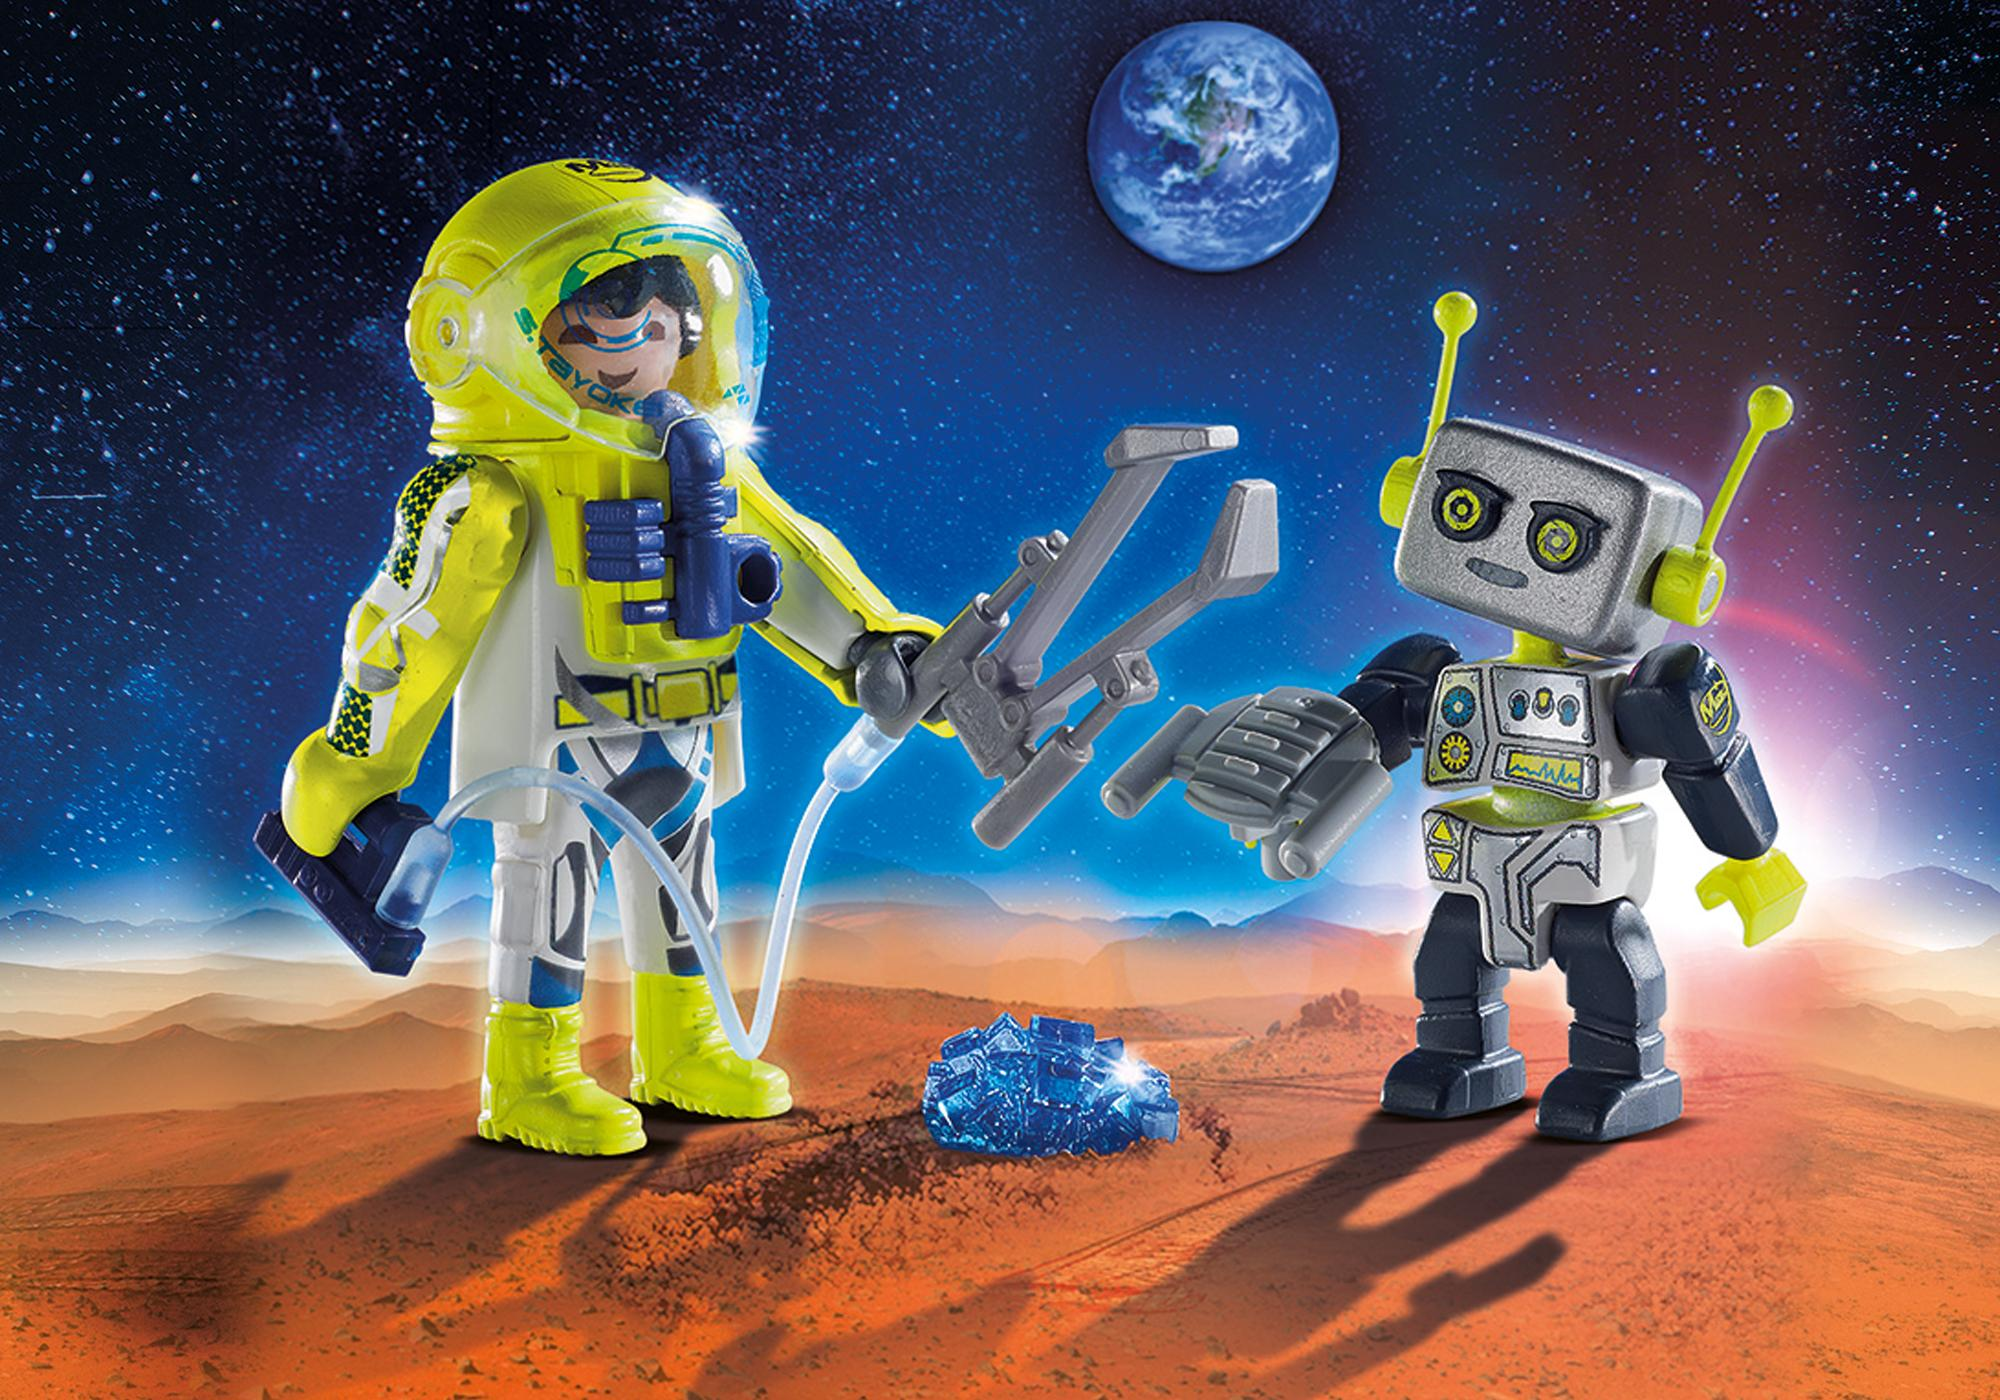 http://media.playmobil.com/i/playmobil/9492_product_detail/Duo Pack Astronauta y Robot